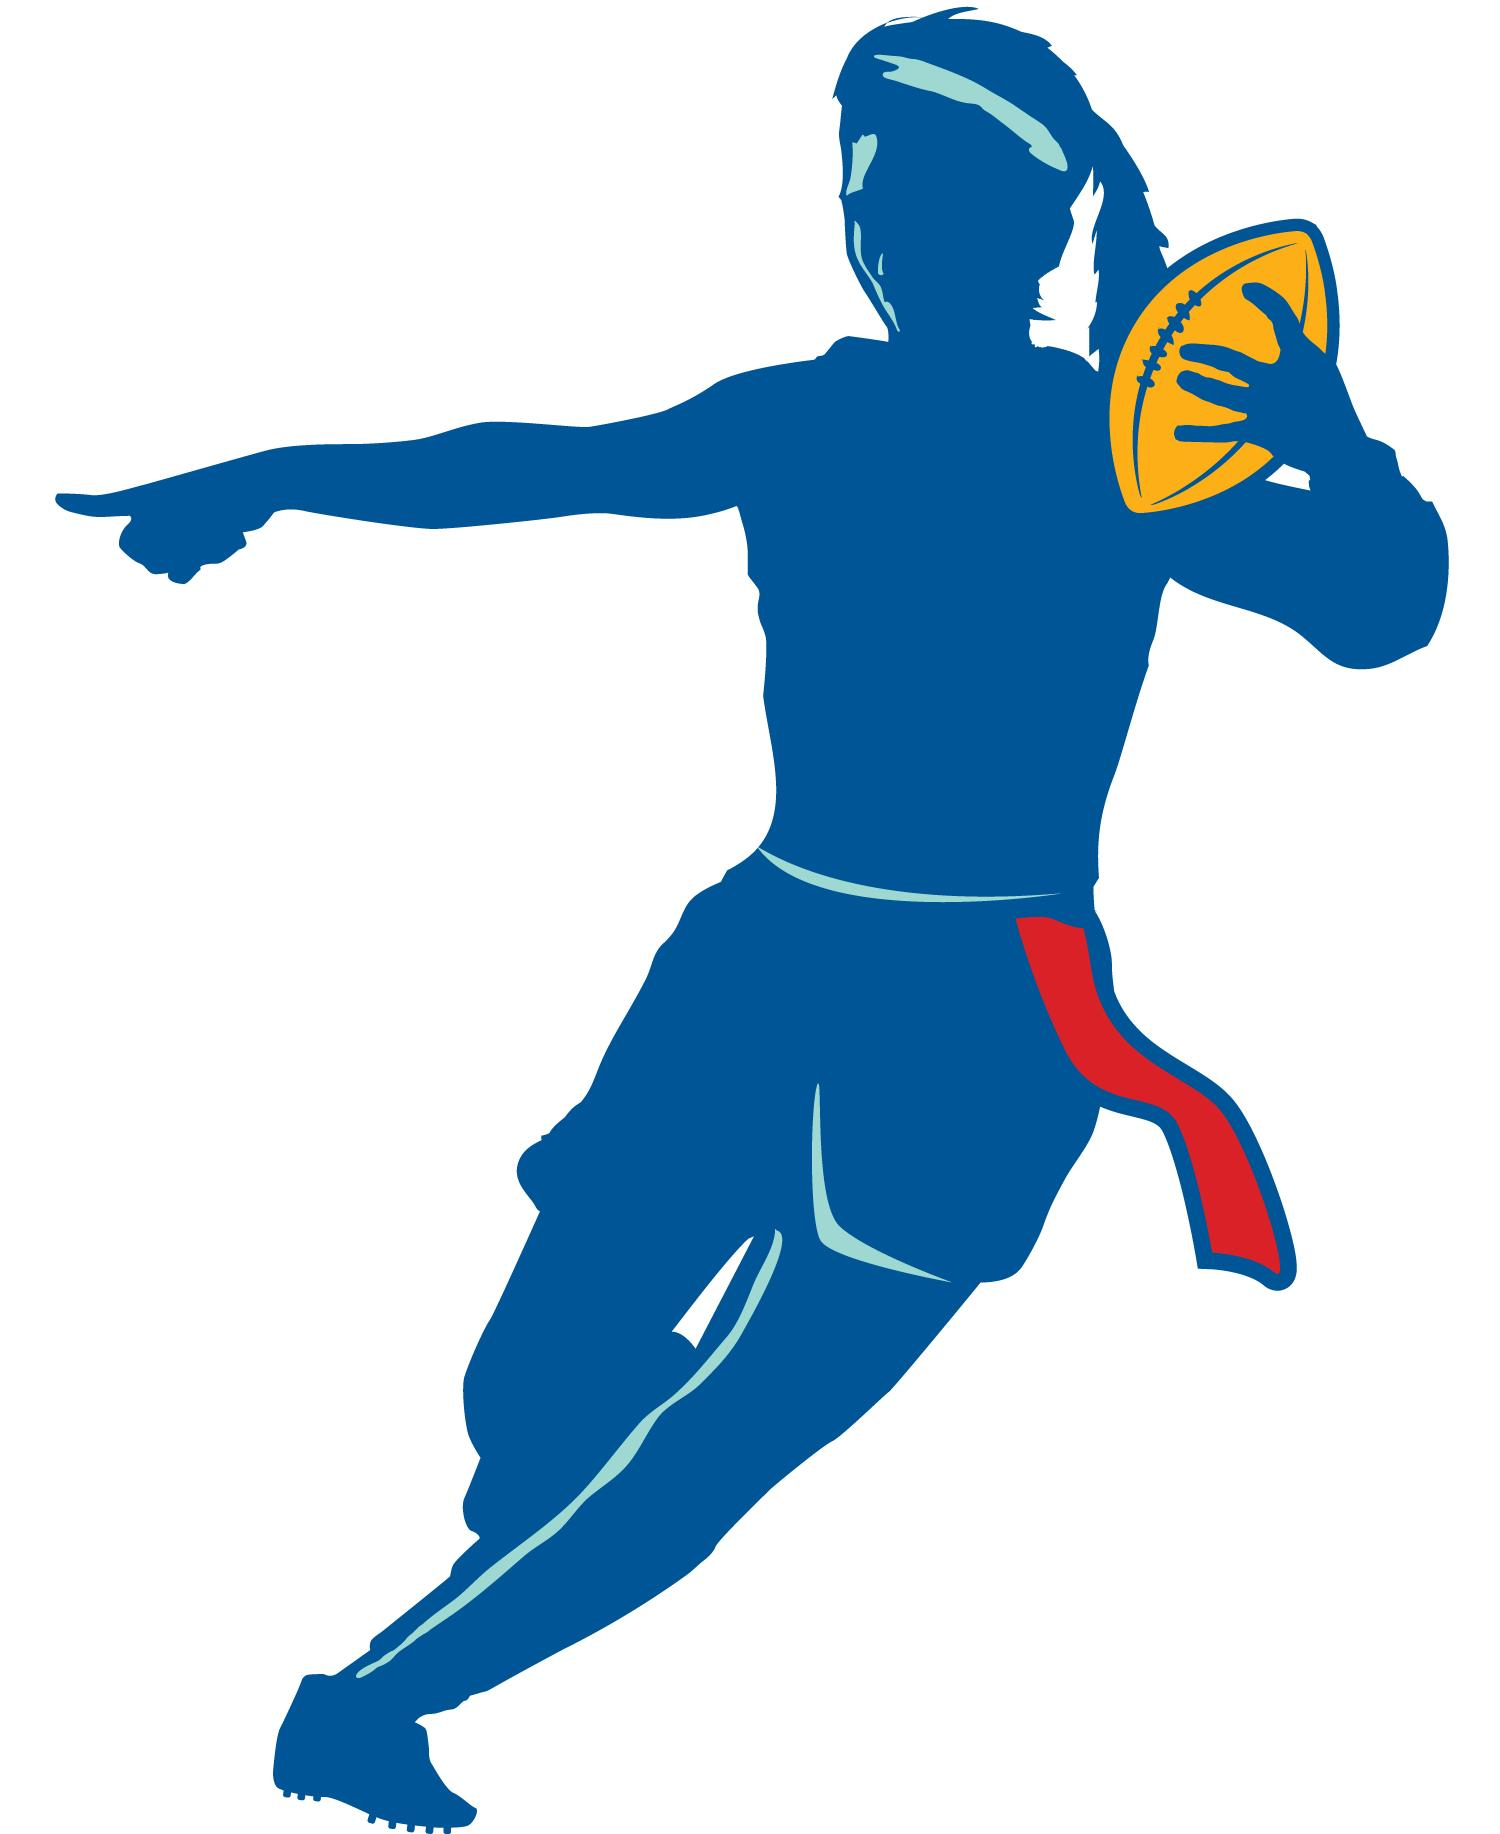 Clipart football flag. Free download best